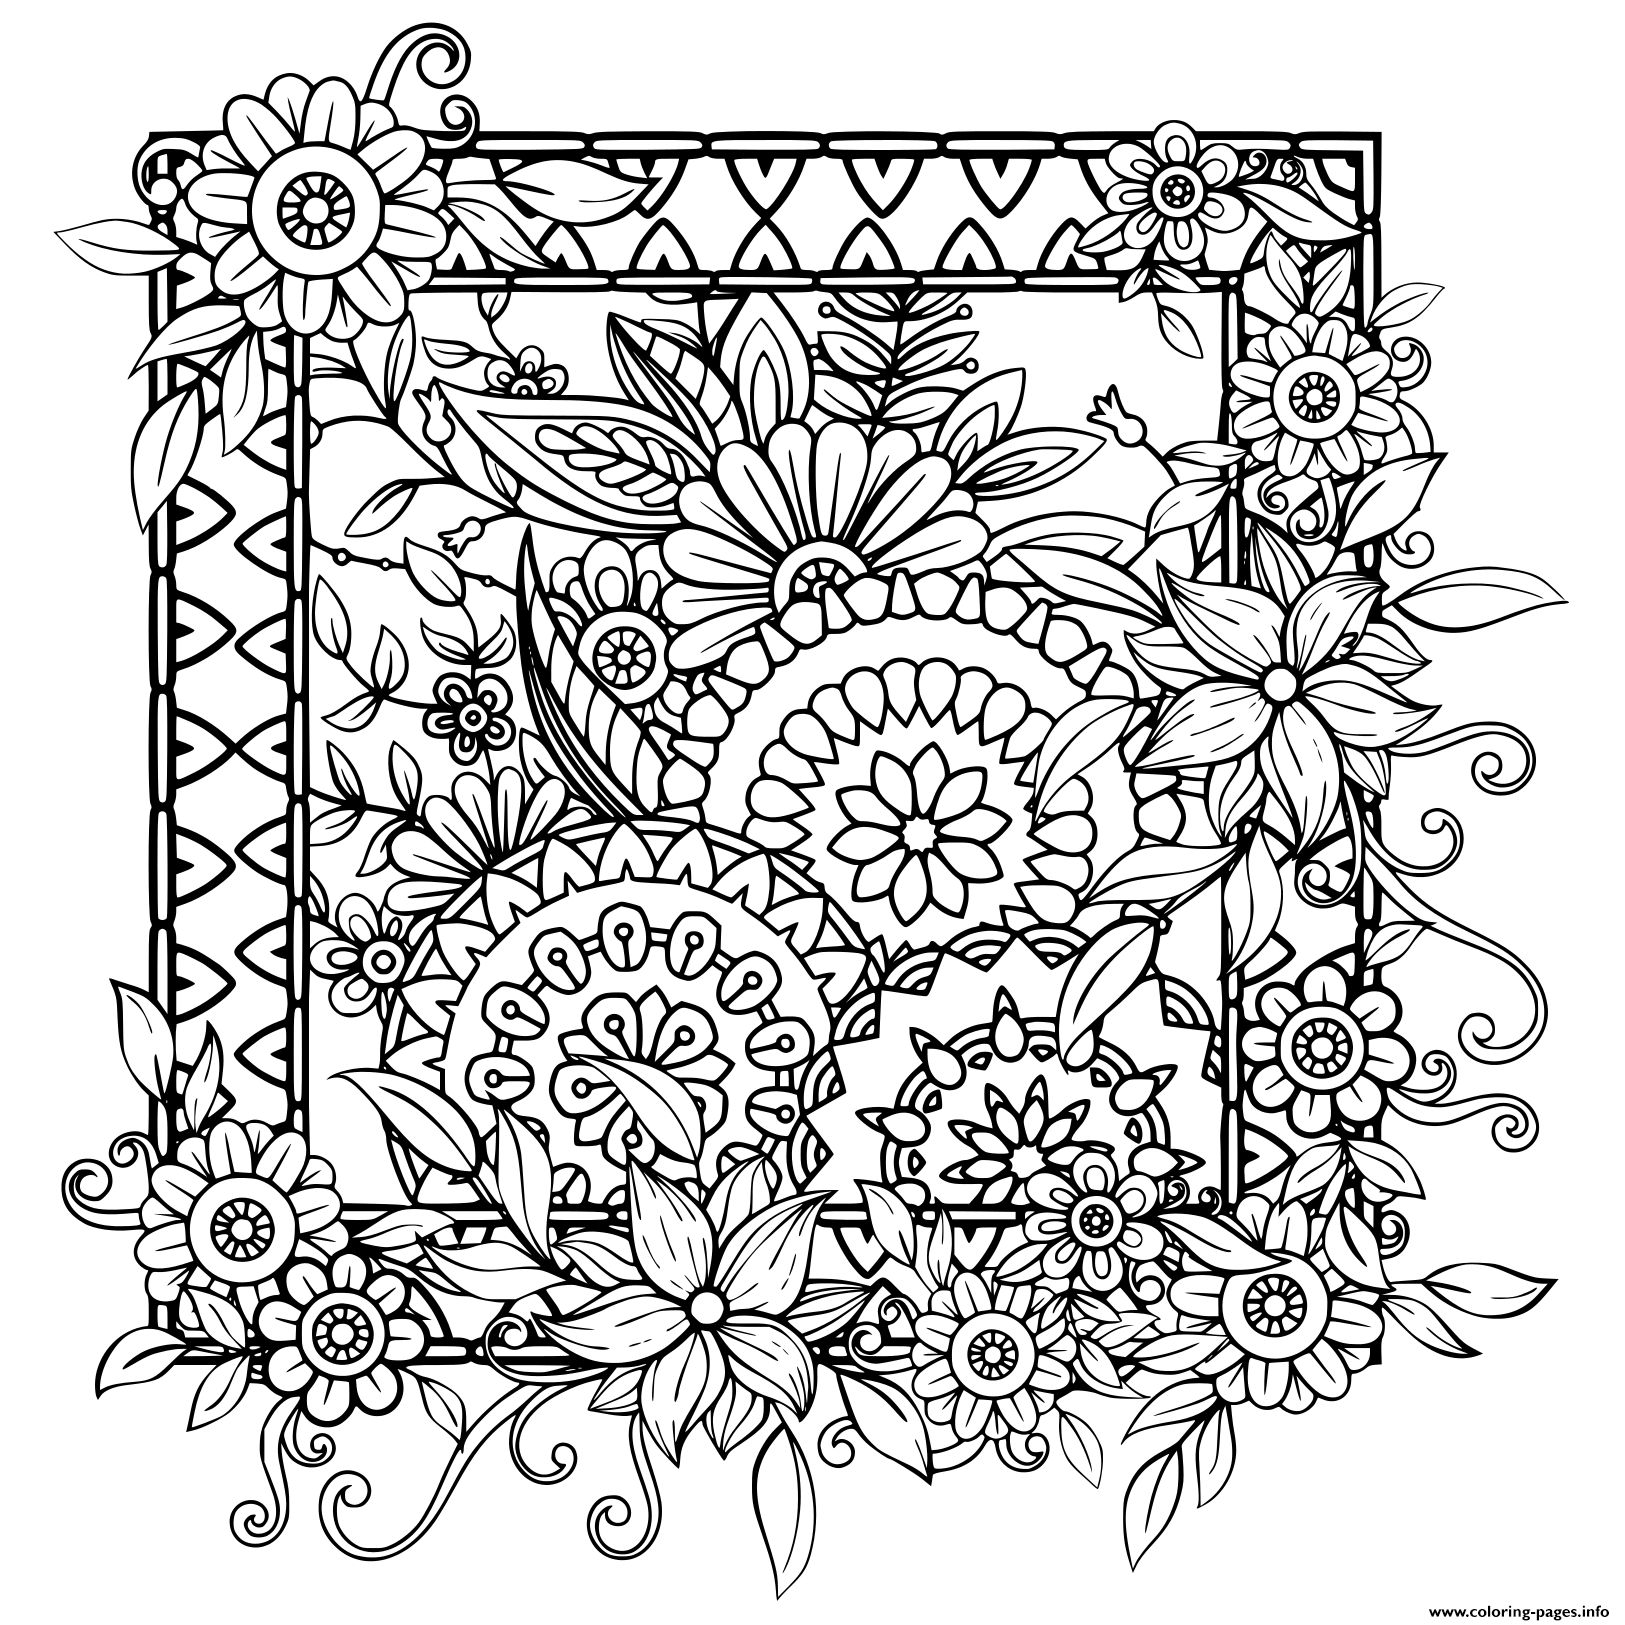 Print Adult With Flowers Pattern Black And White Doodle Wreath